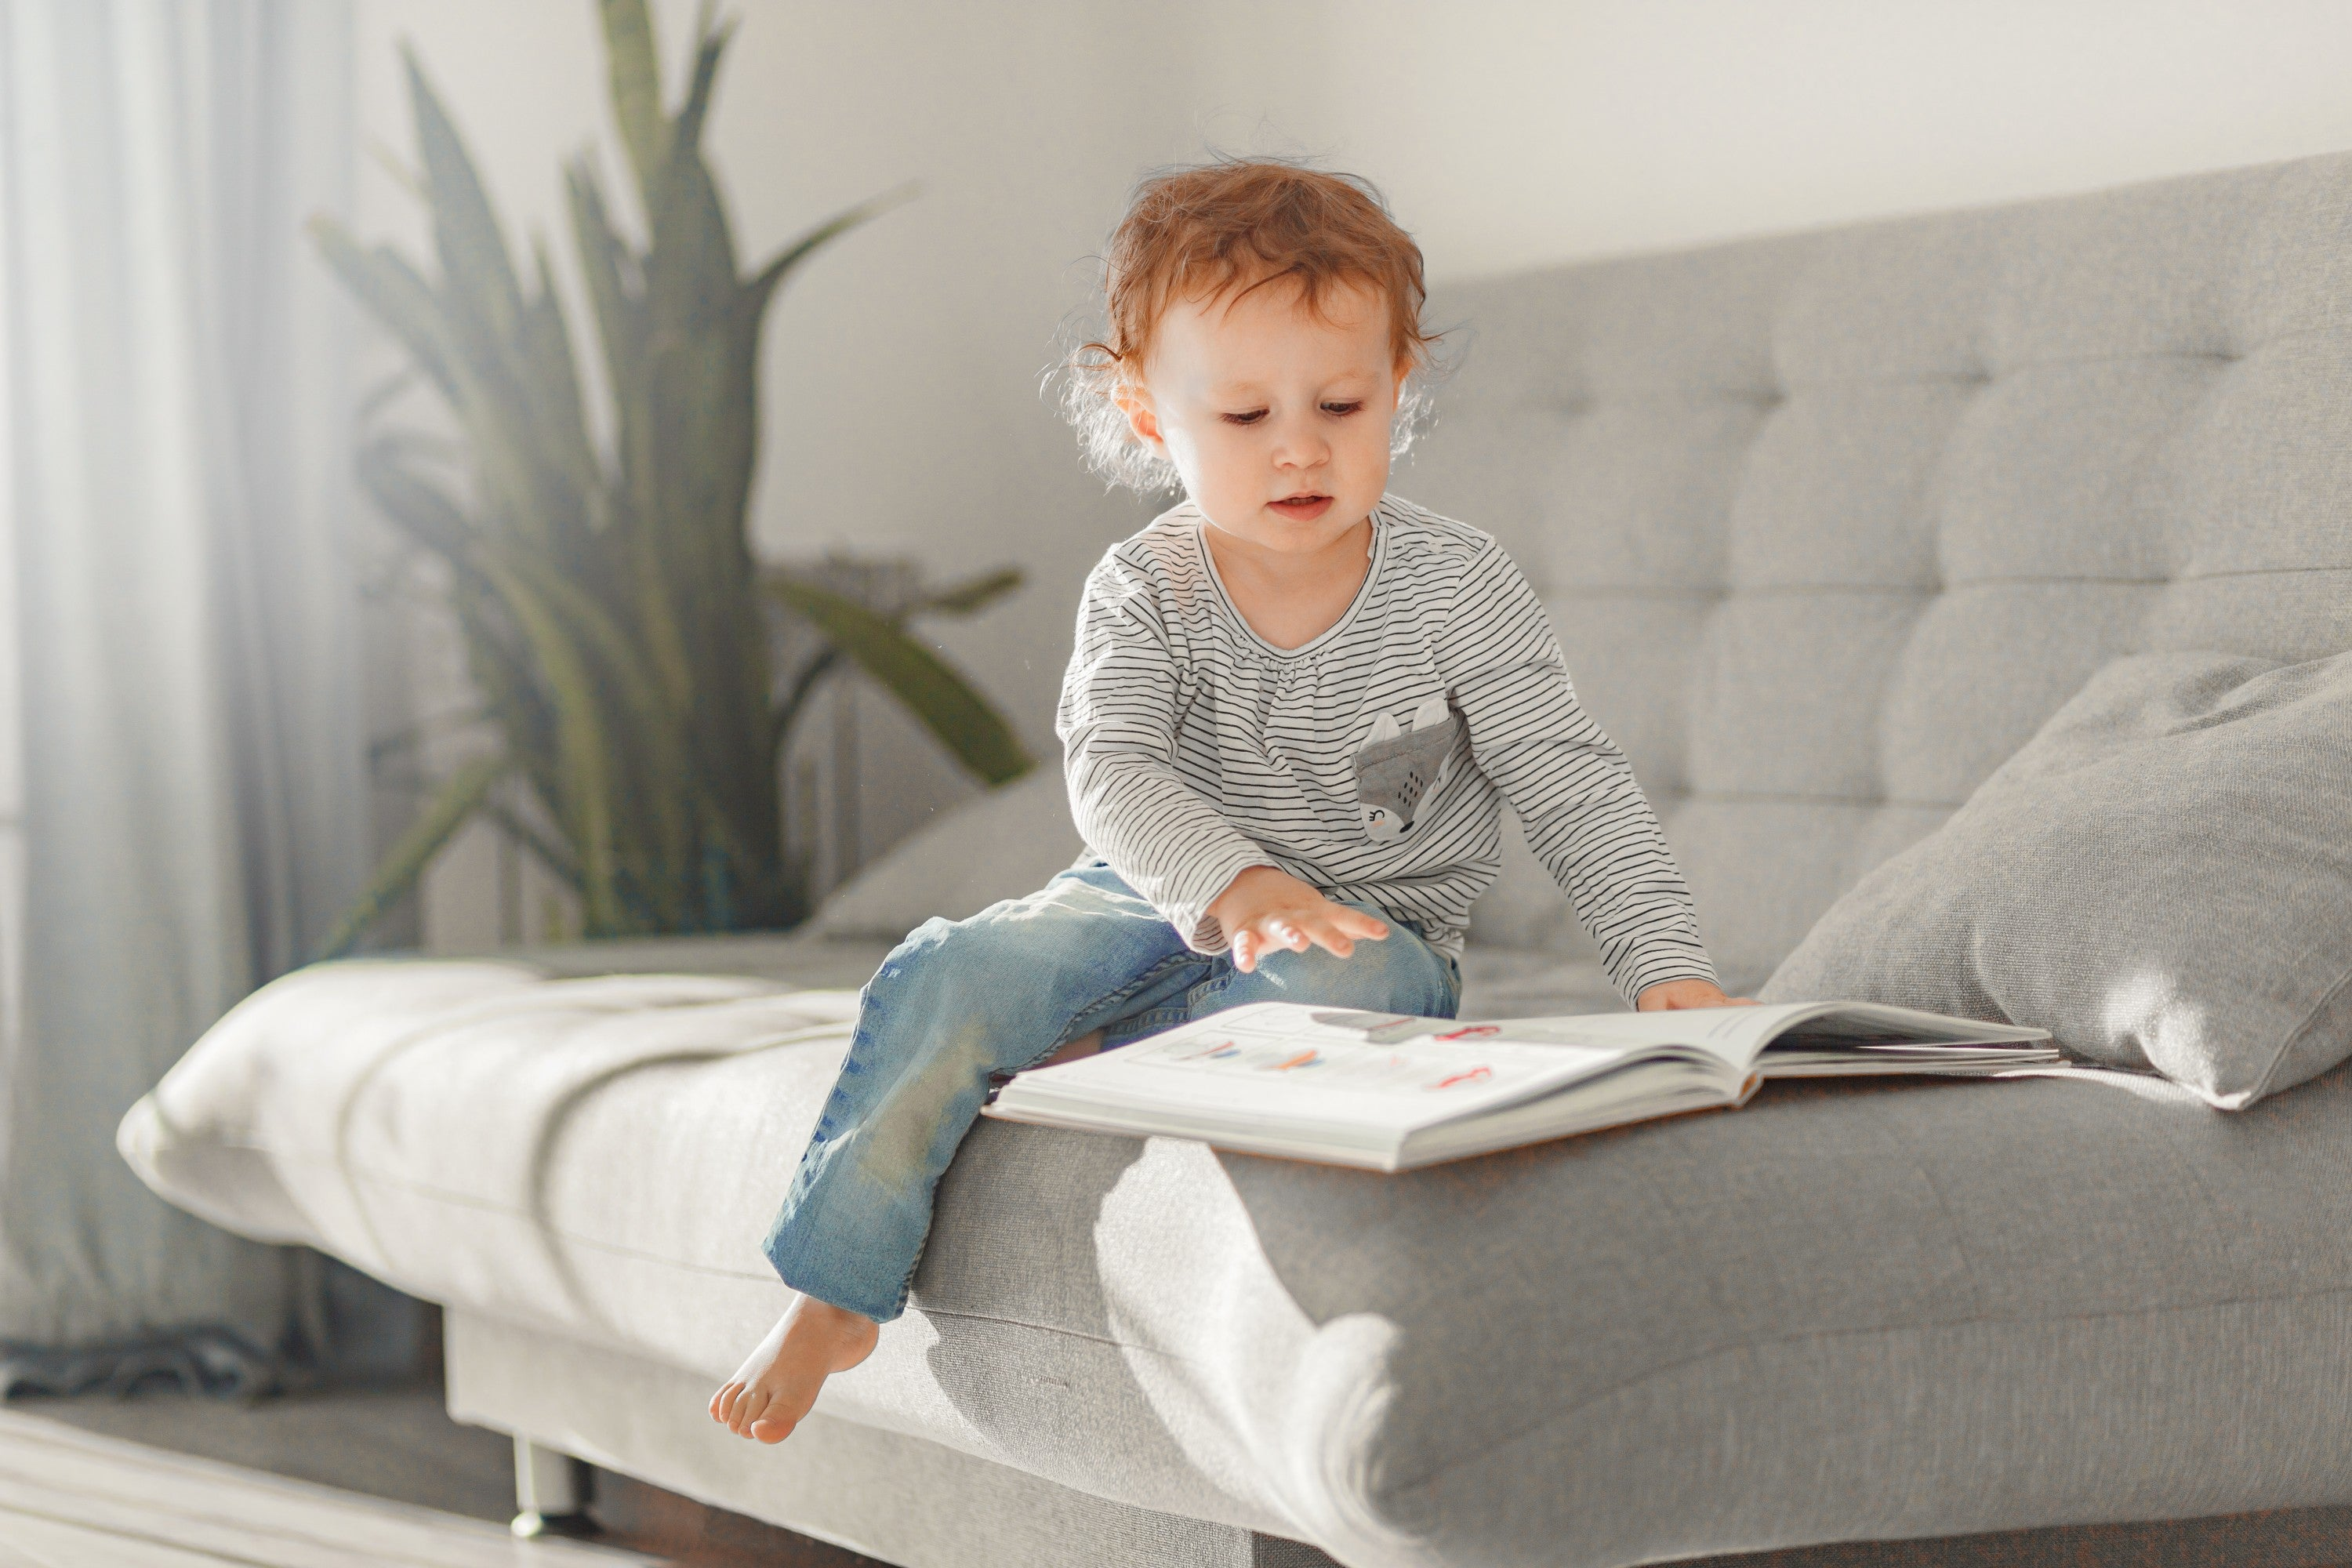 2 year old little girl reading a book on a bed